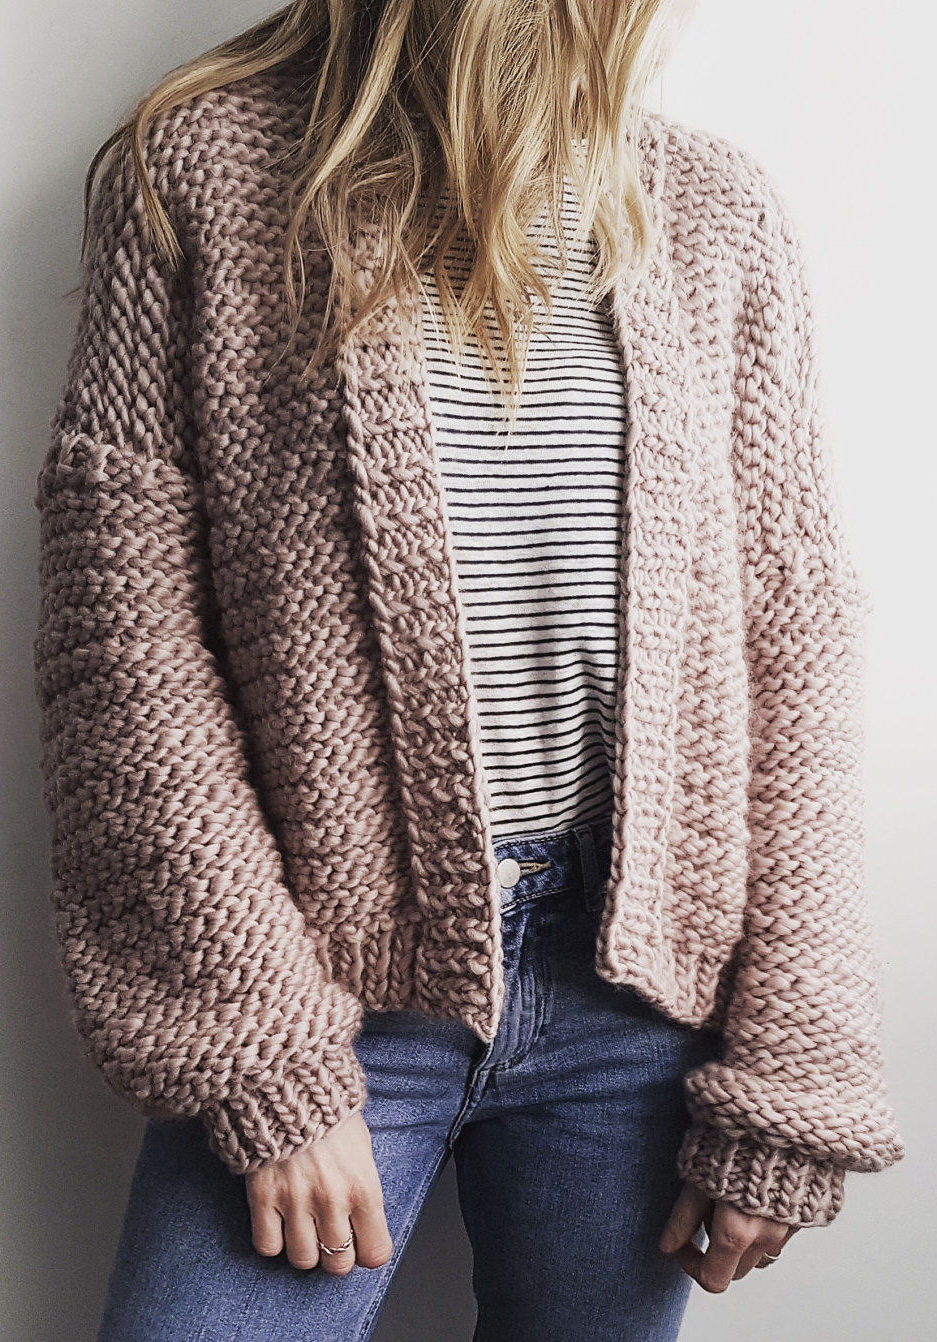 Knitting Pattern for Bomber Cardi